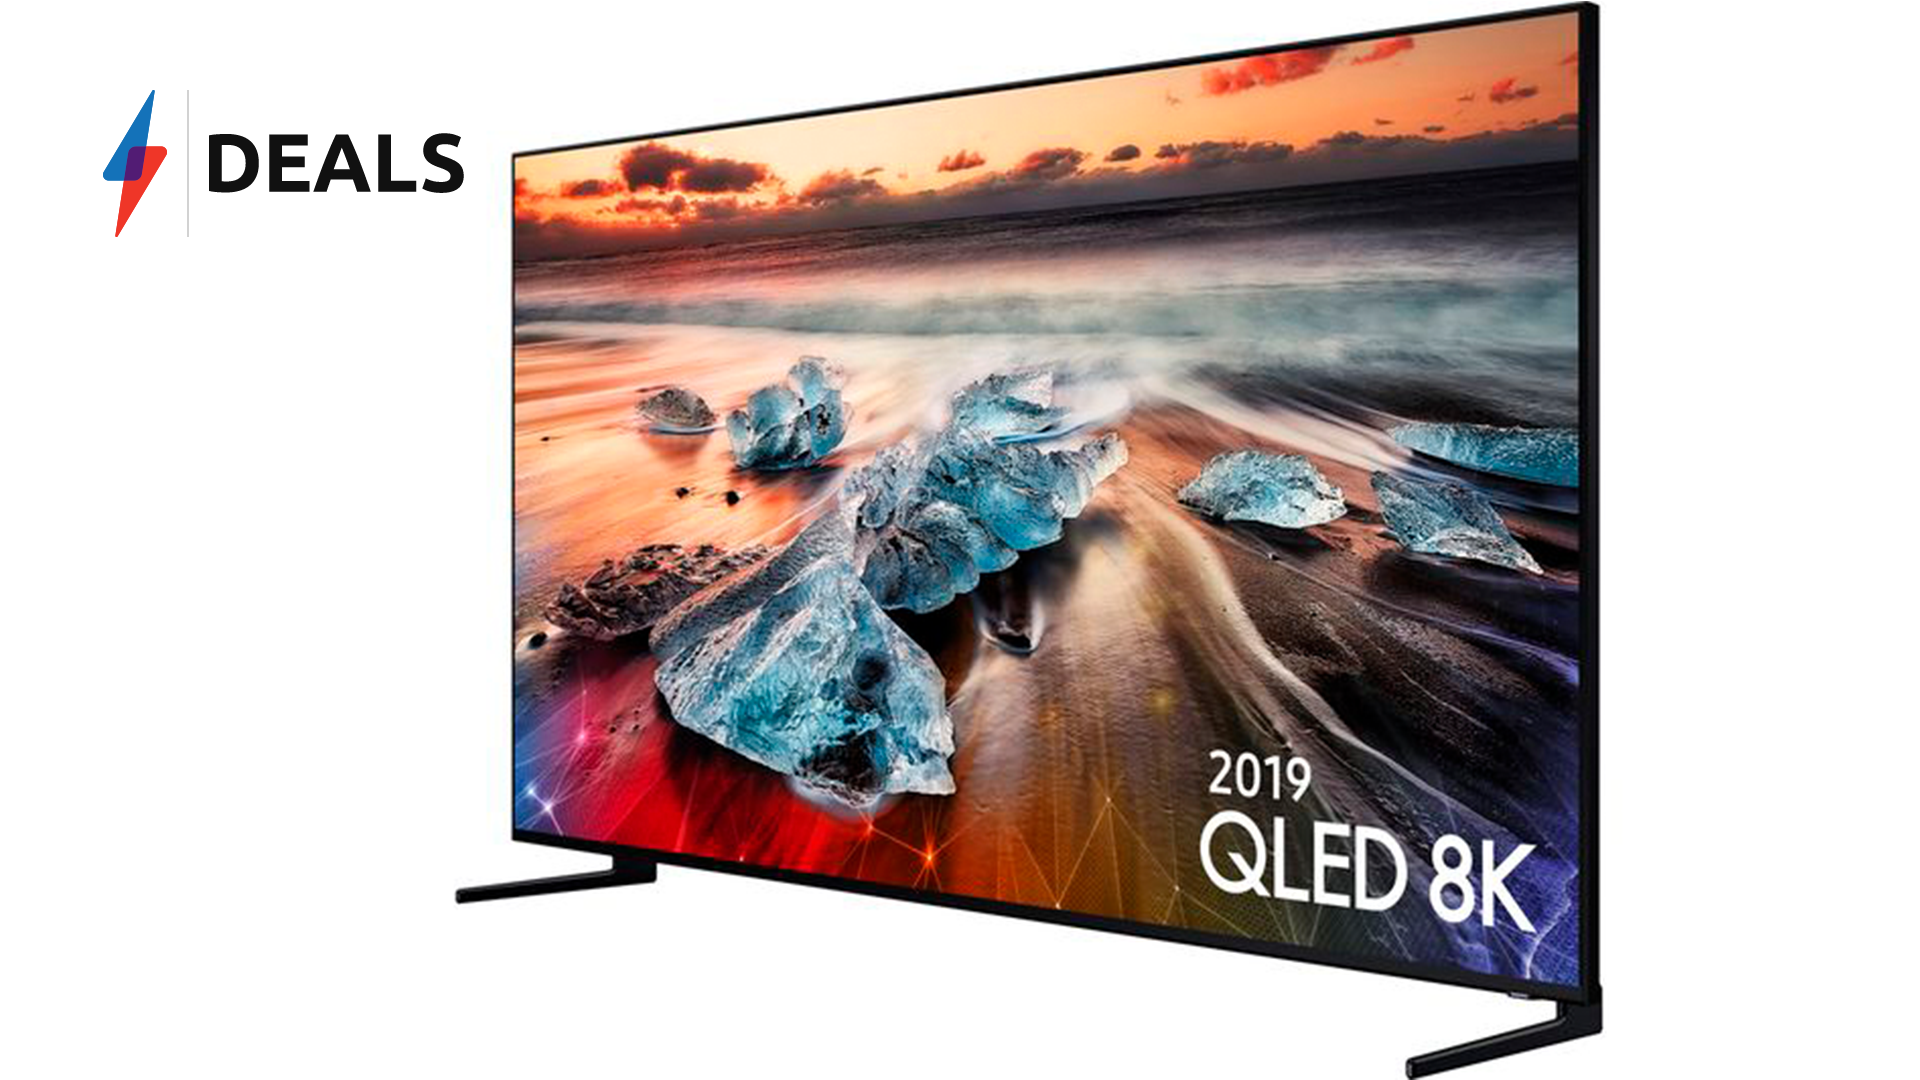 Massive £1,200 Price Cut on the Samsung 75-inch QLED 8K Smart TV